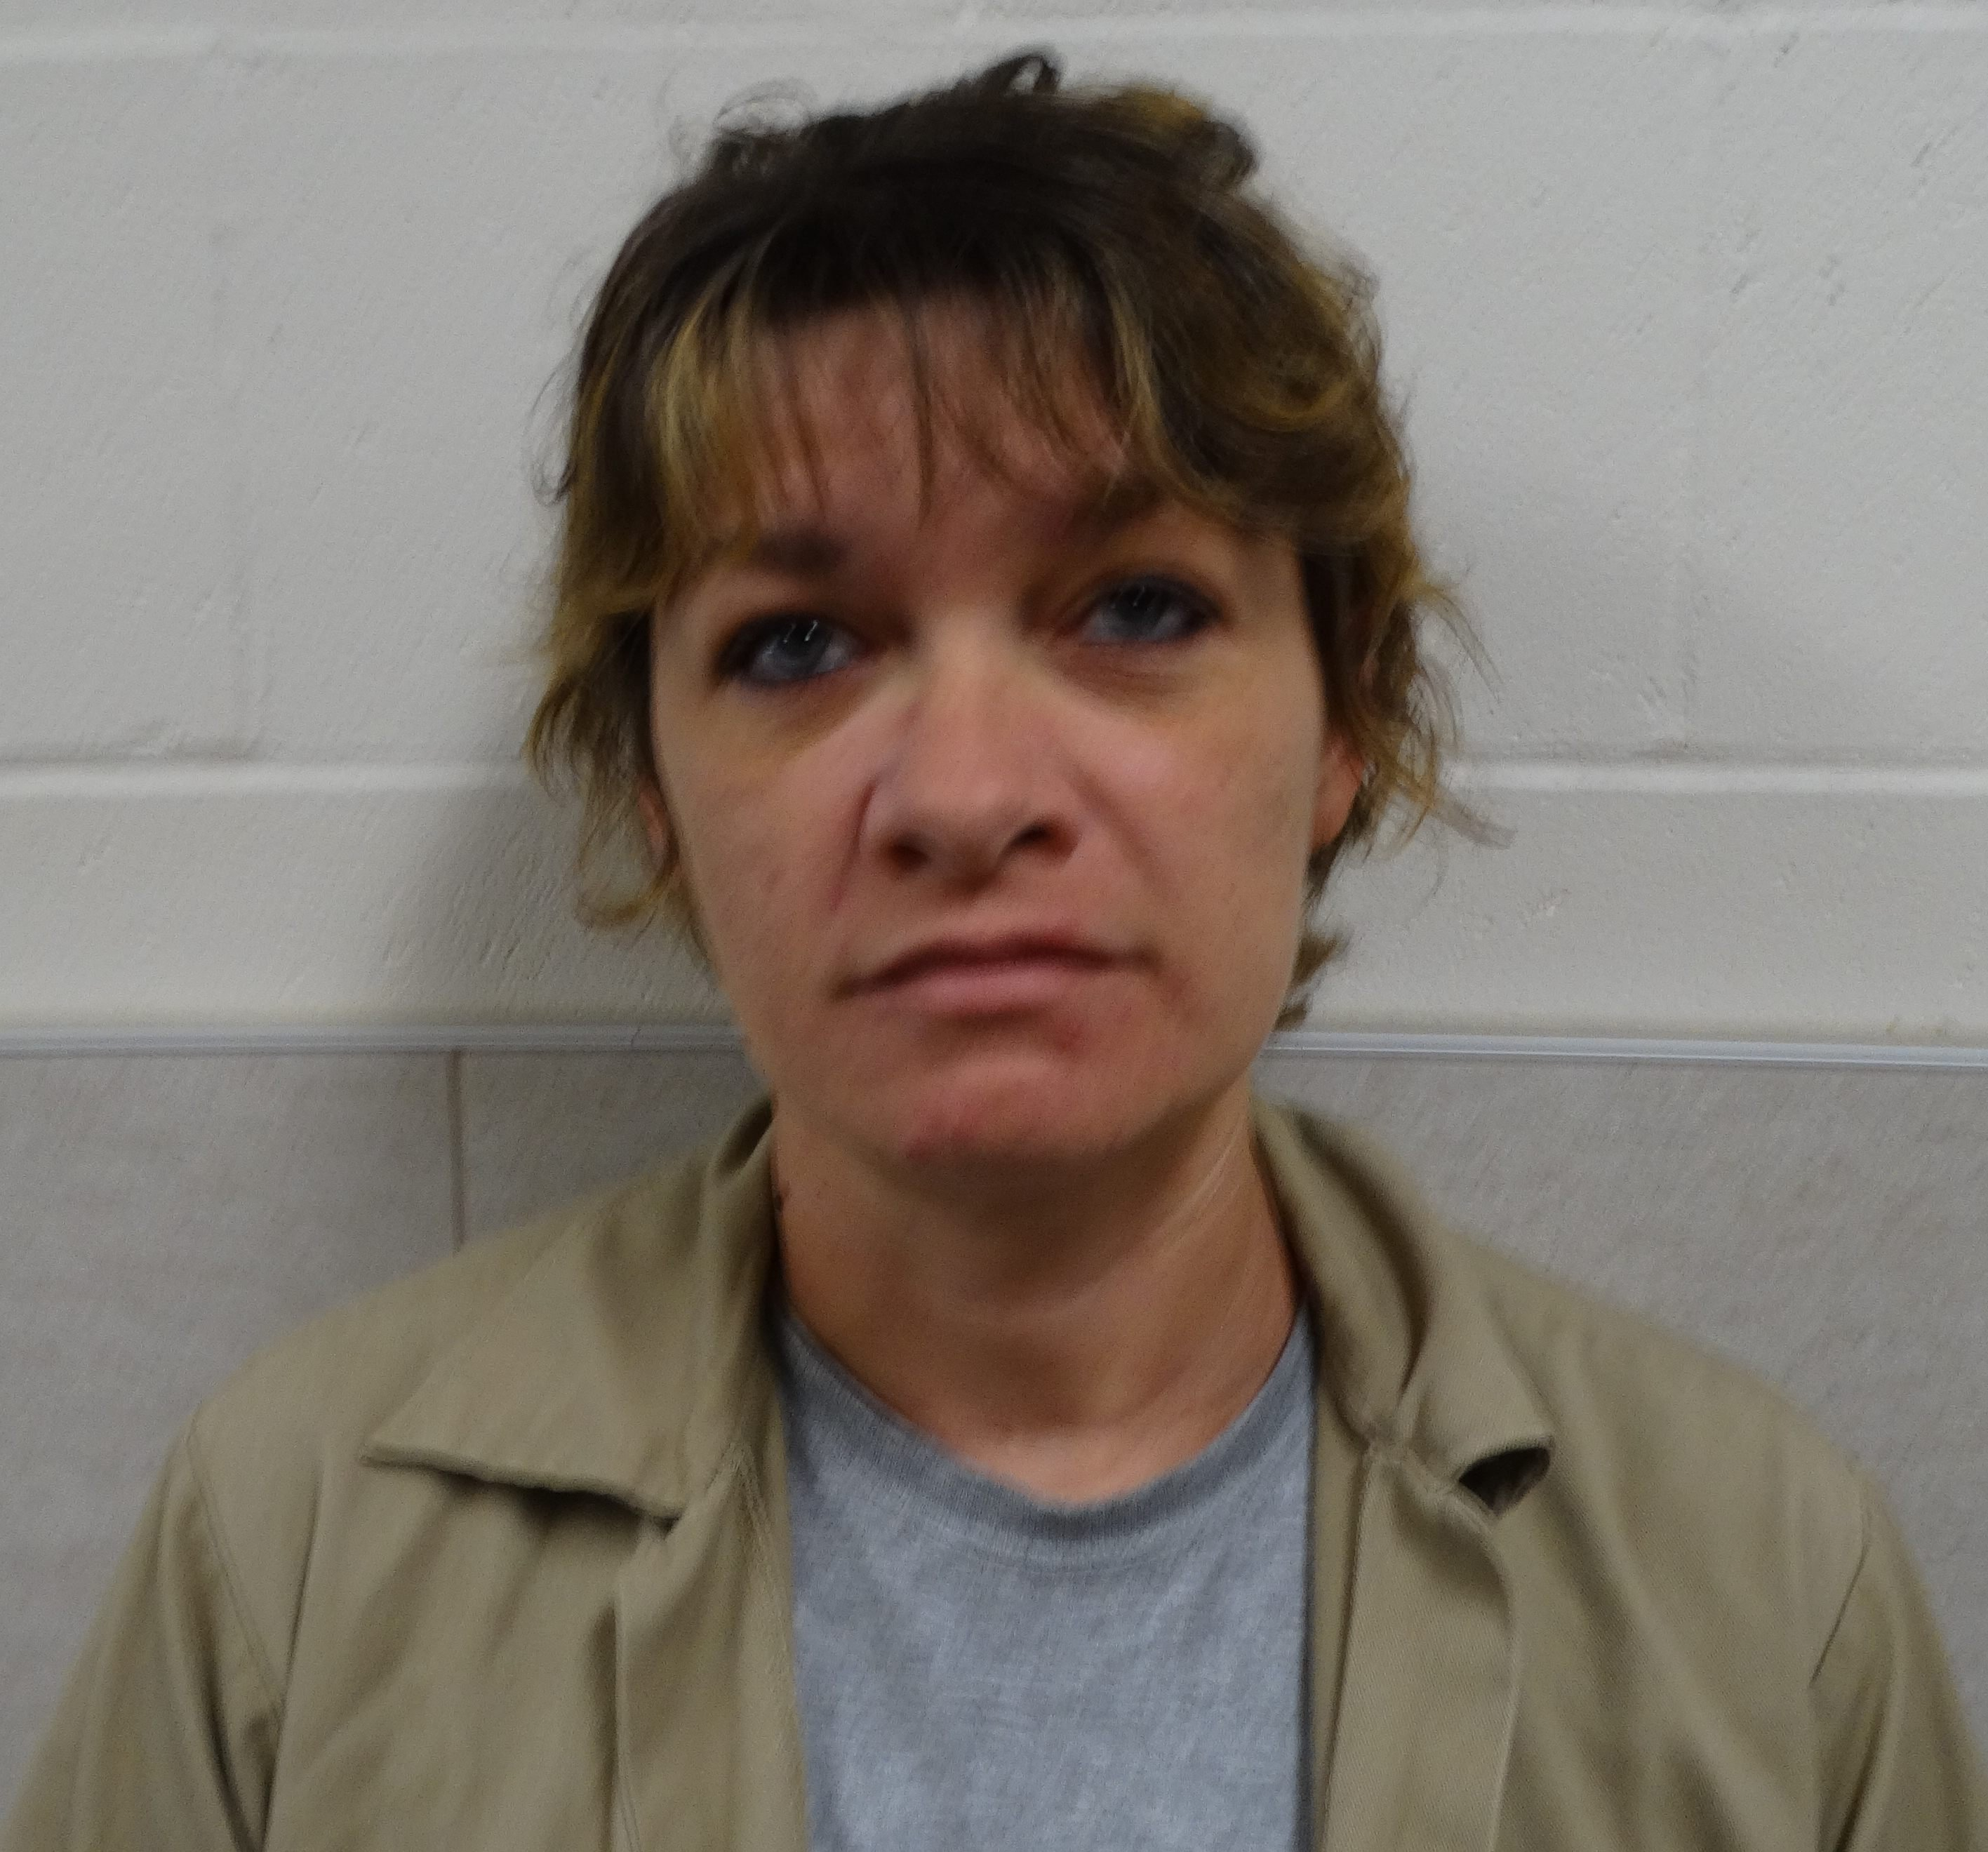 Inmate serving time on Scotts Bluff County charge missing after leaving work assignment